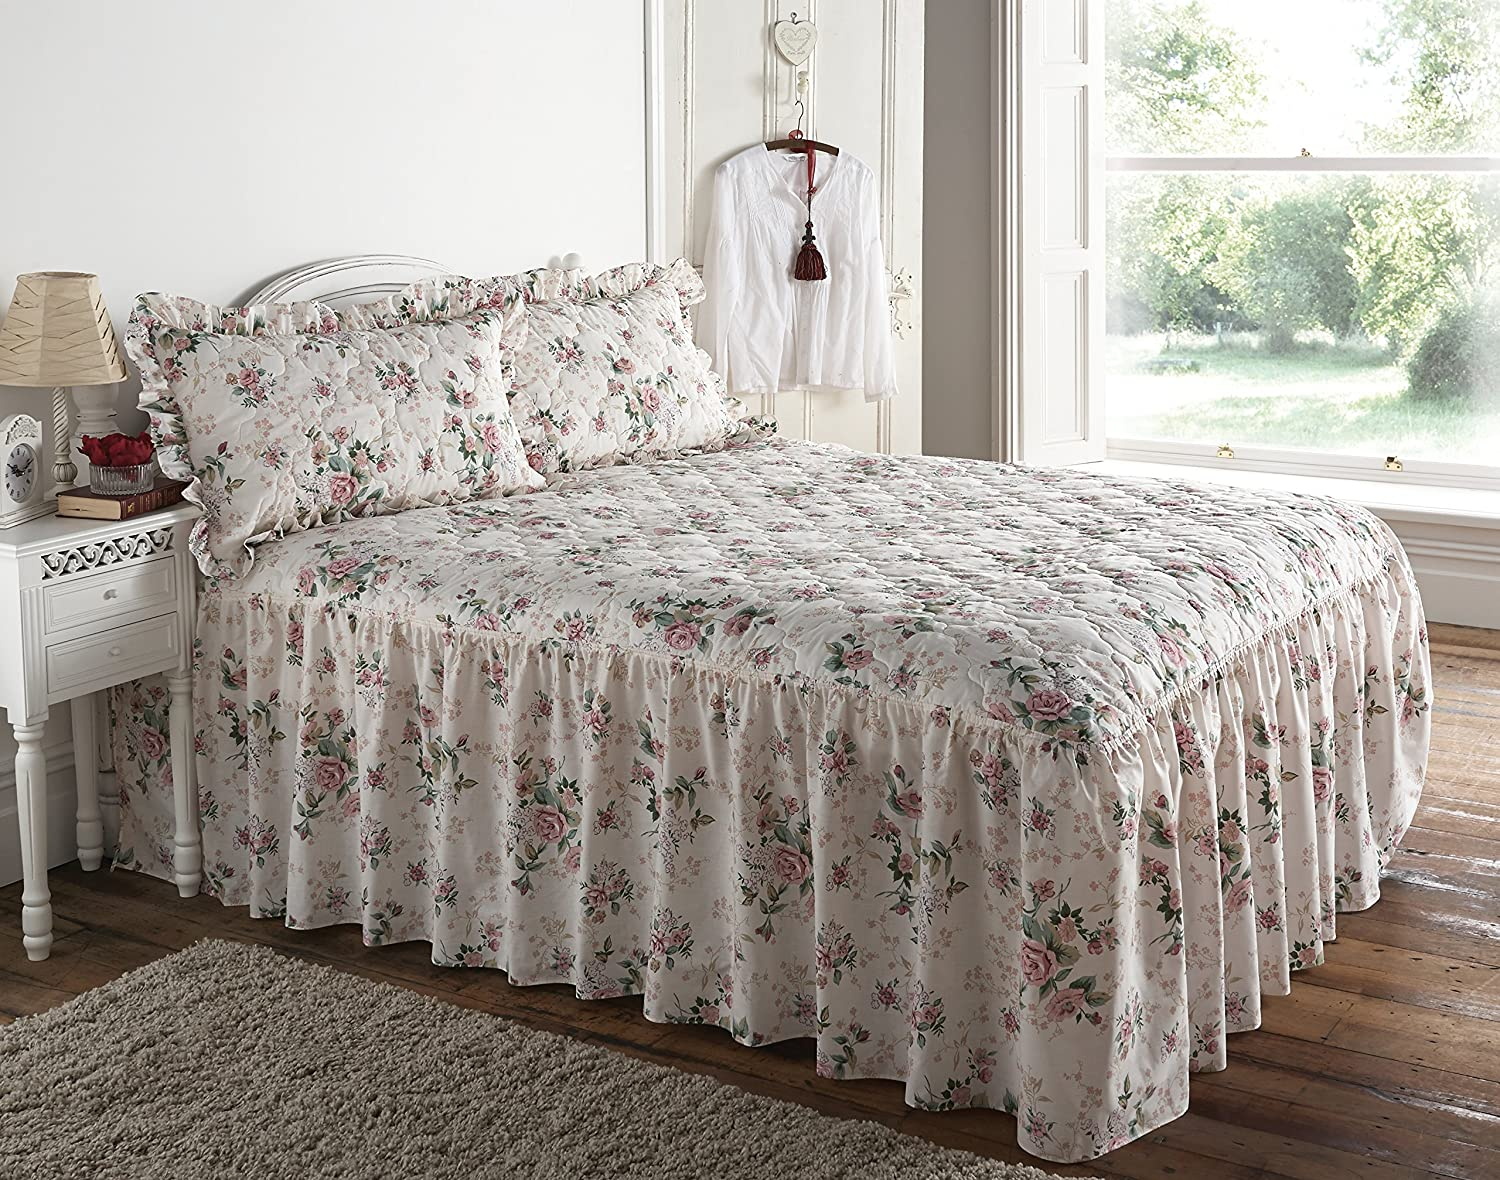 Quilted Classic Rose Garden Floral Fitted Double Bedspread: Amazon ... : fitted quilted bedspreads - Adamdwight.com